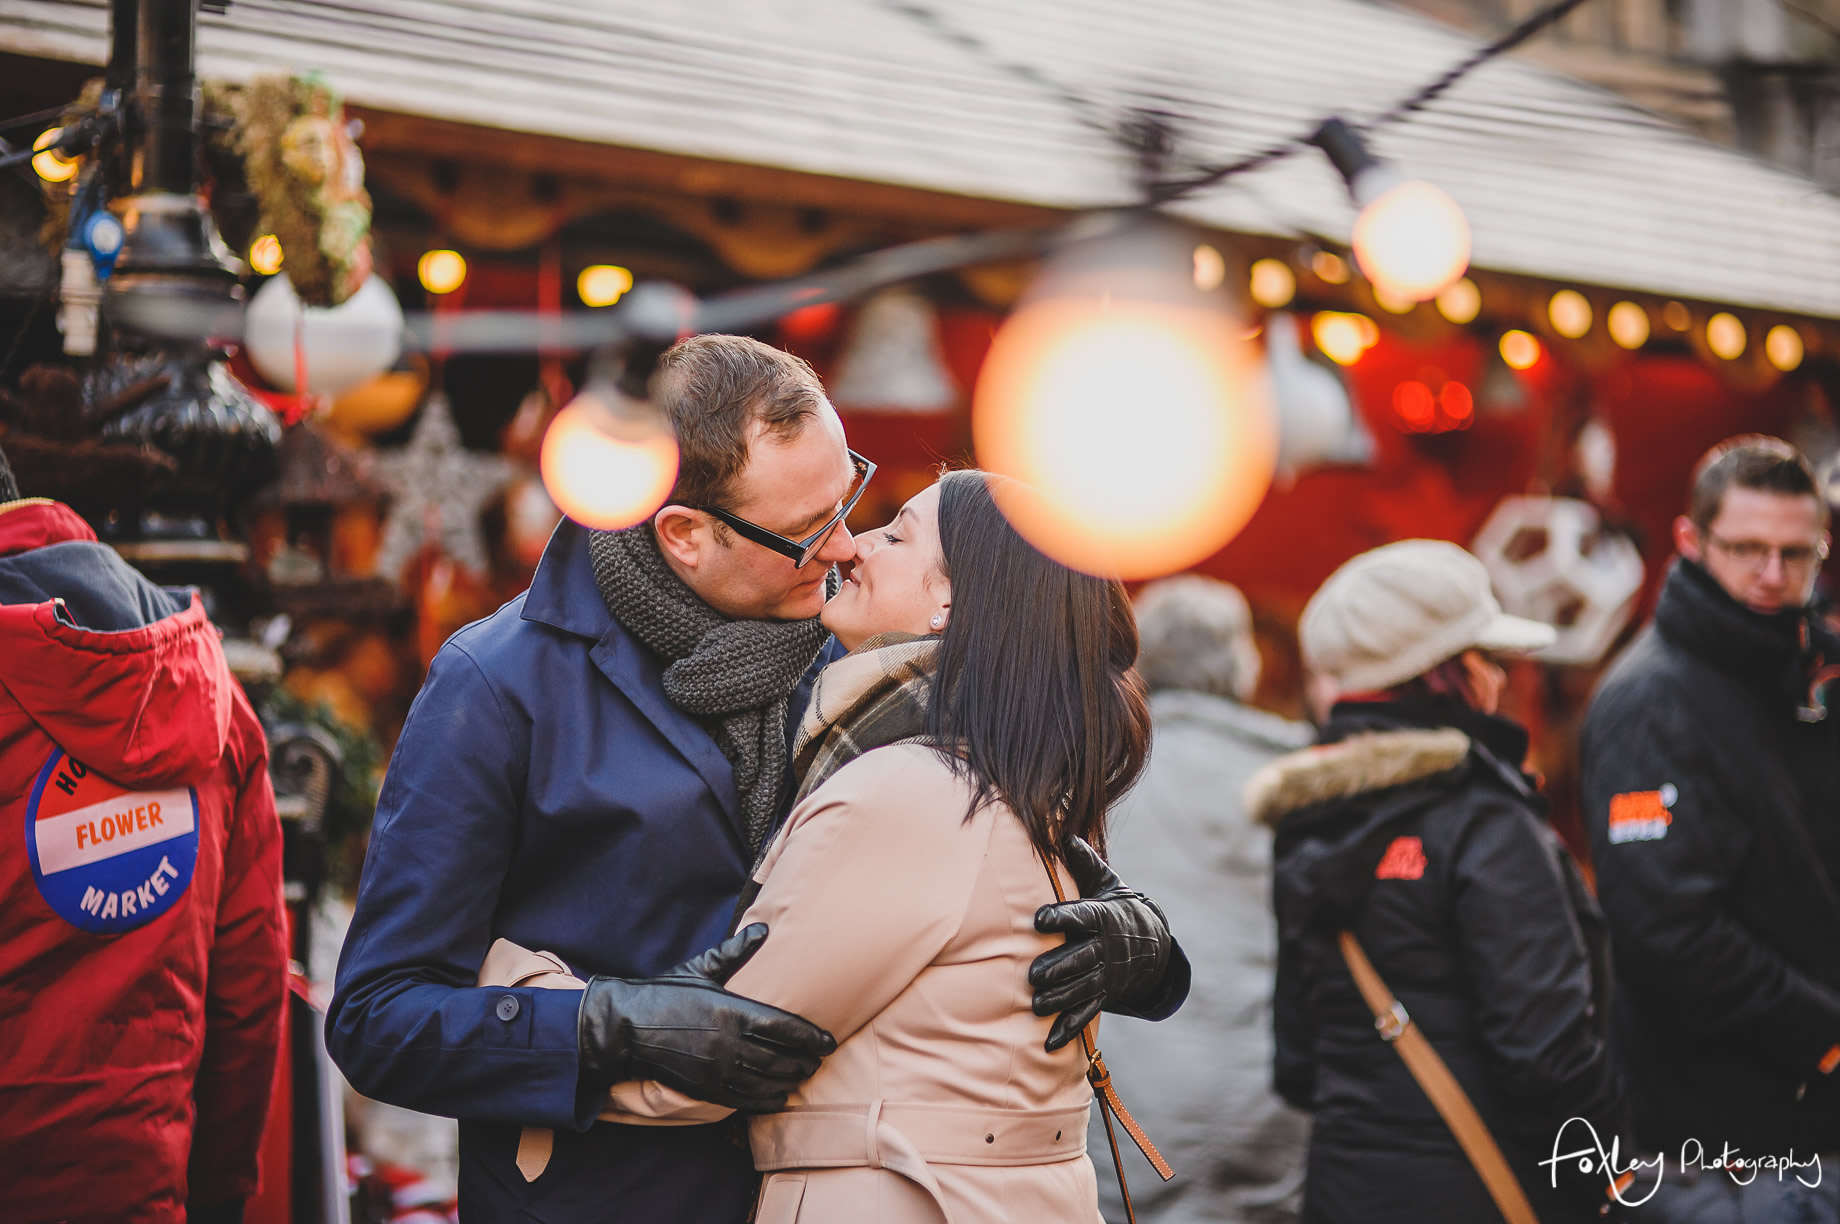 Angela and Andrew's Pre-Wedding Shoot at Manchester Christmas Markets 010